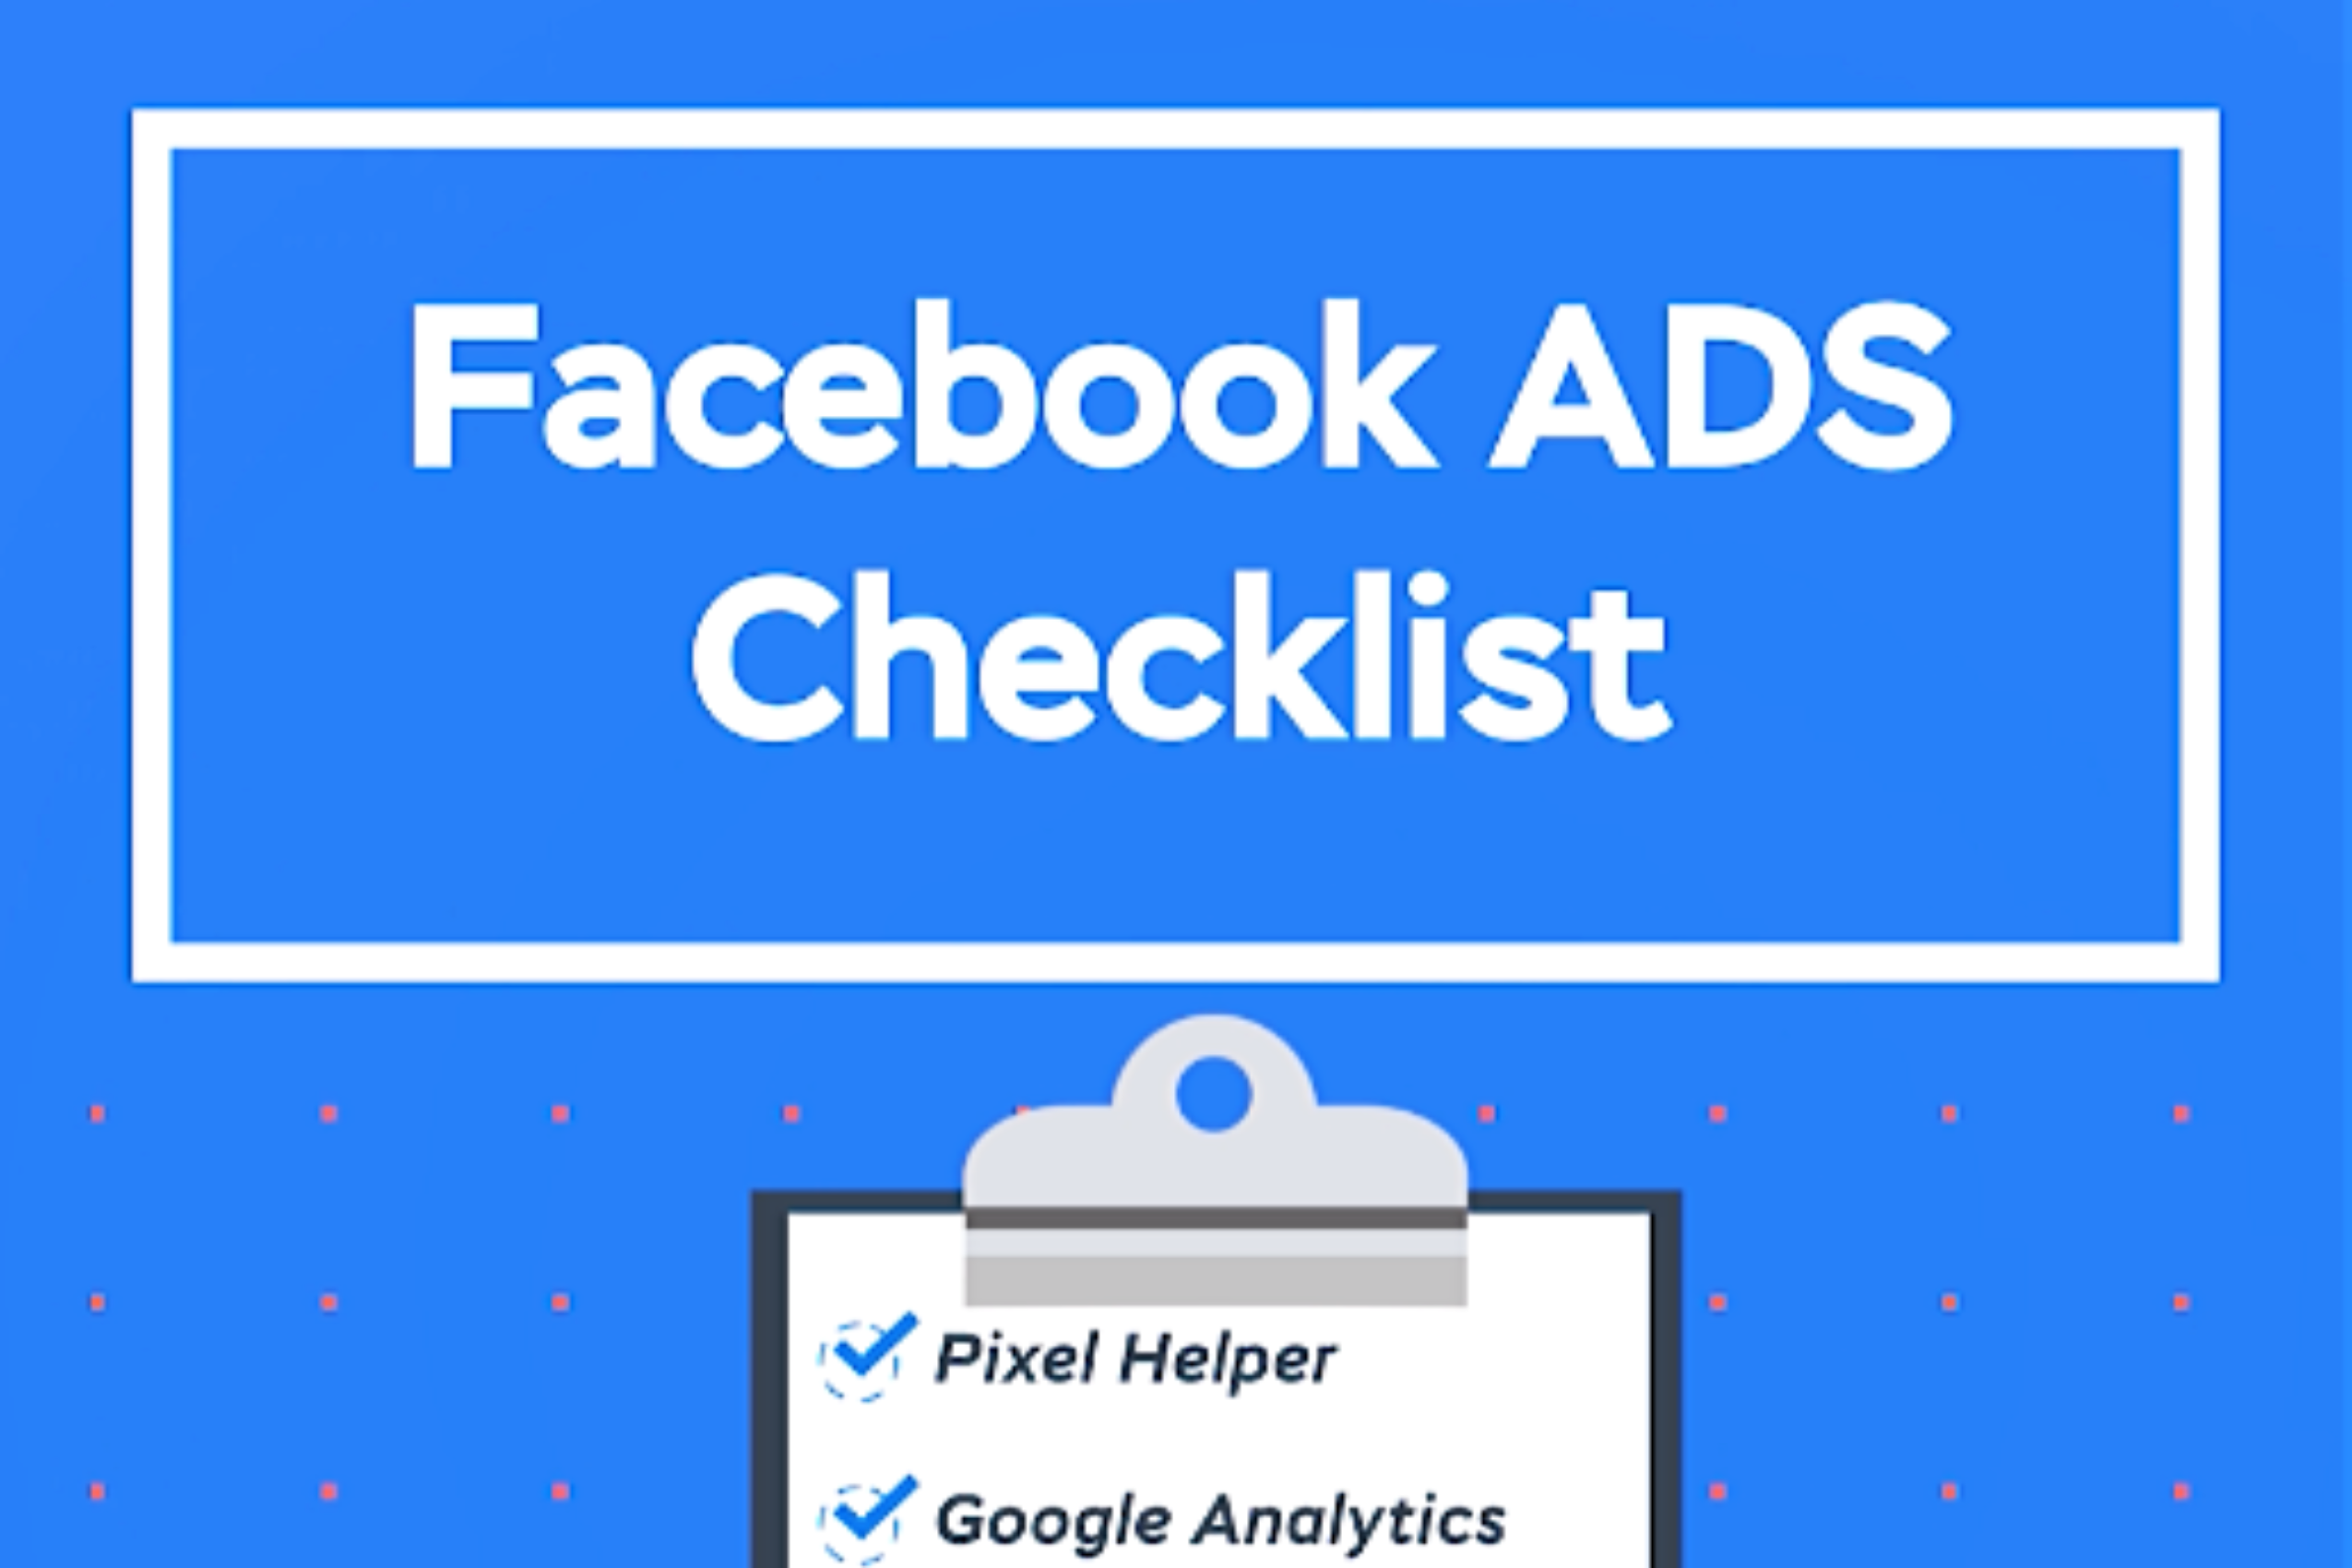 Jumper's Facebook Ads Checklist Will Take You from Fail to Scale